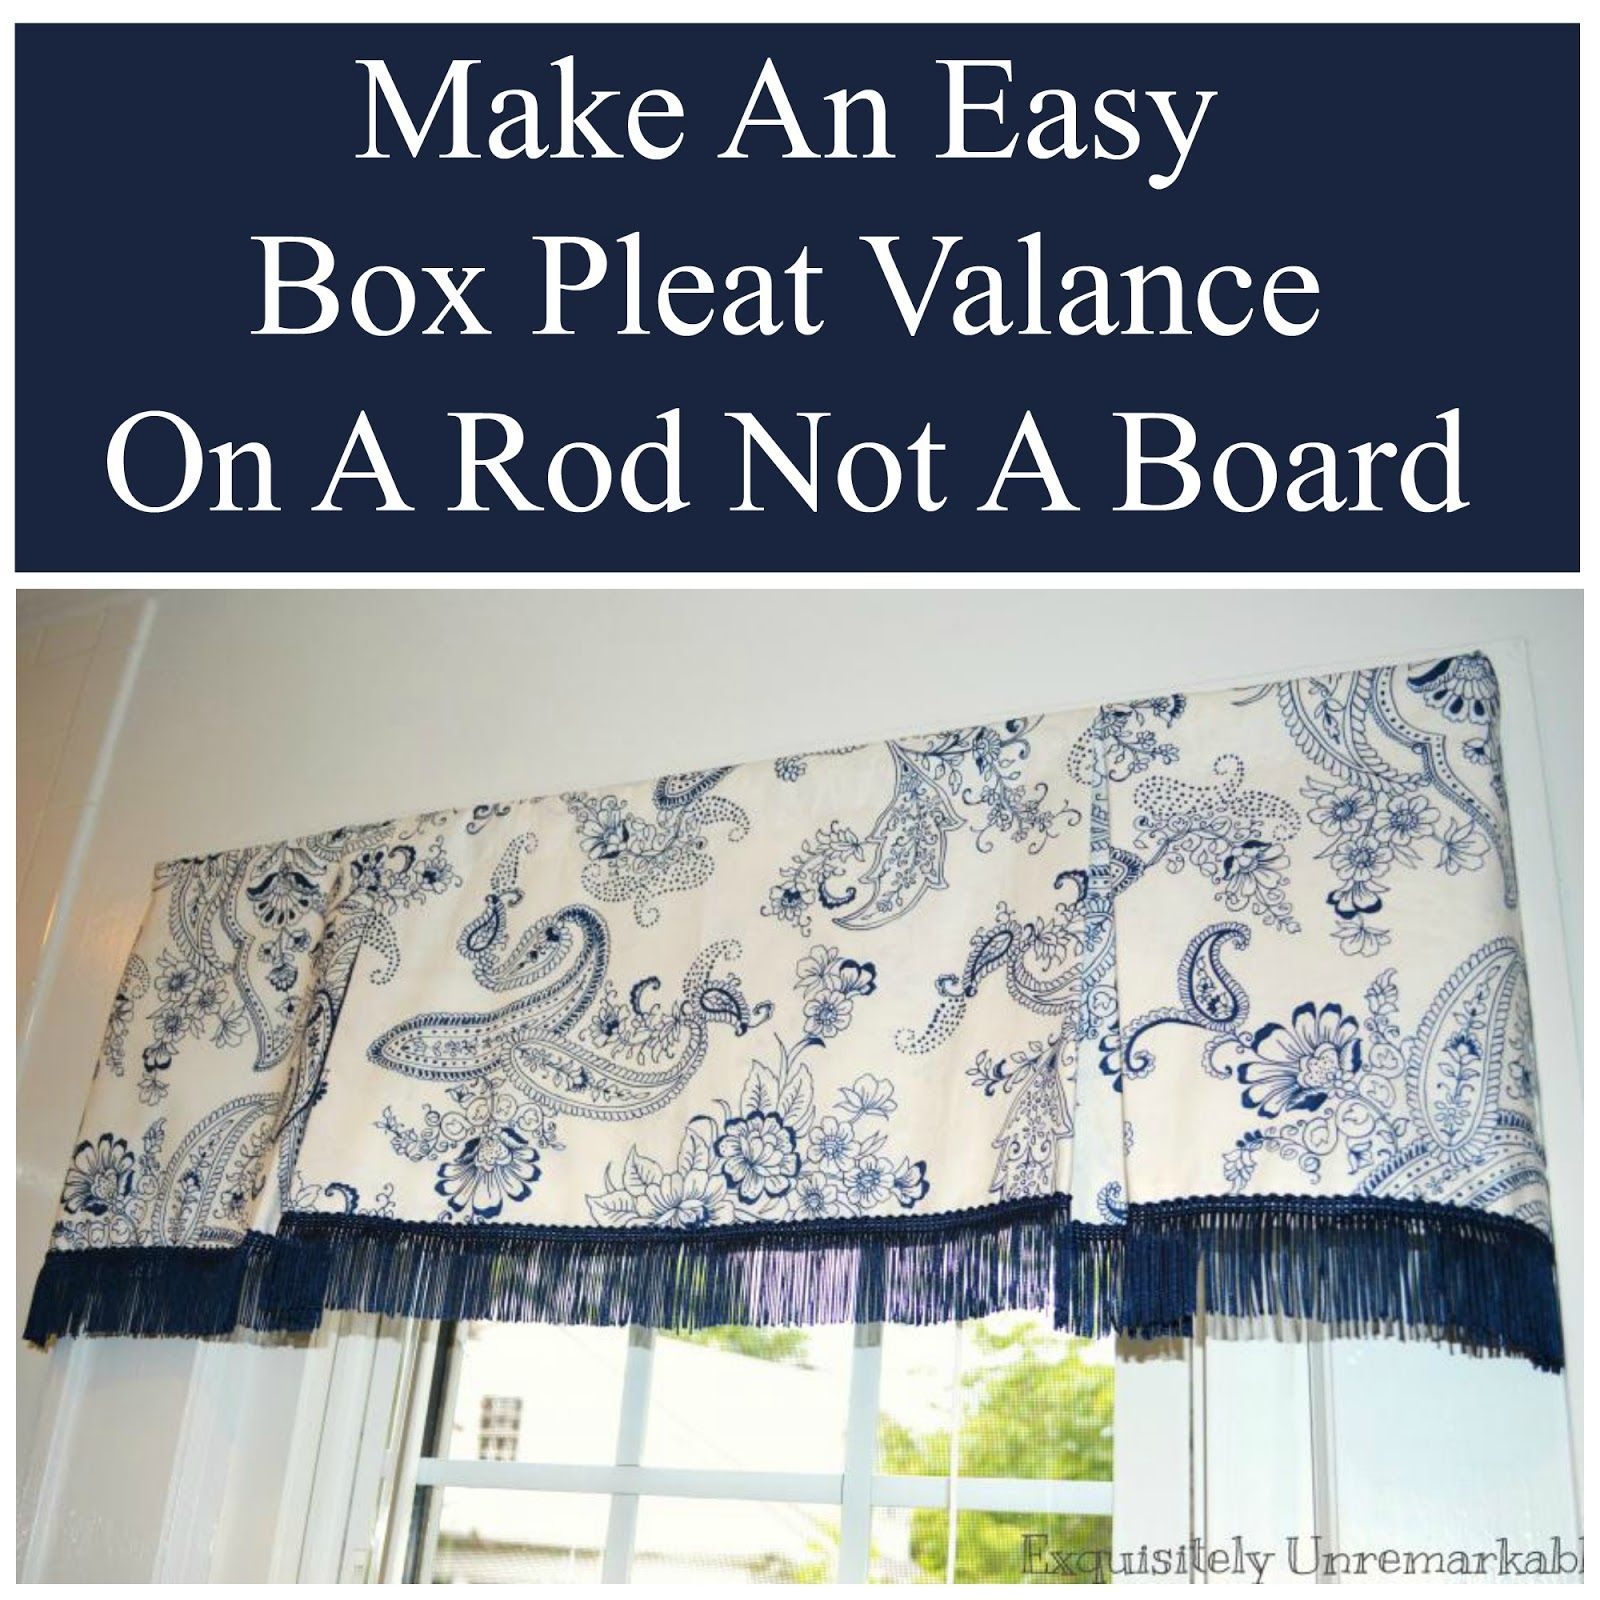 How To Make A Box Pleat Valance In